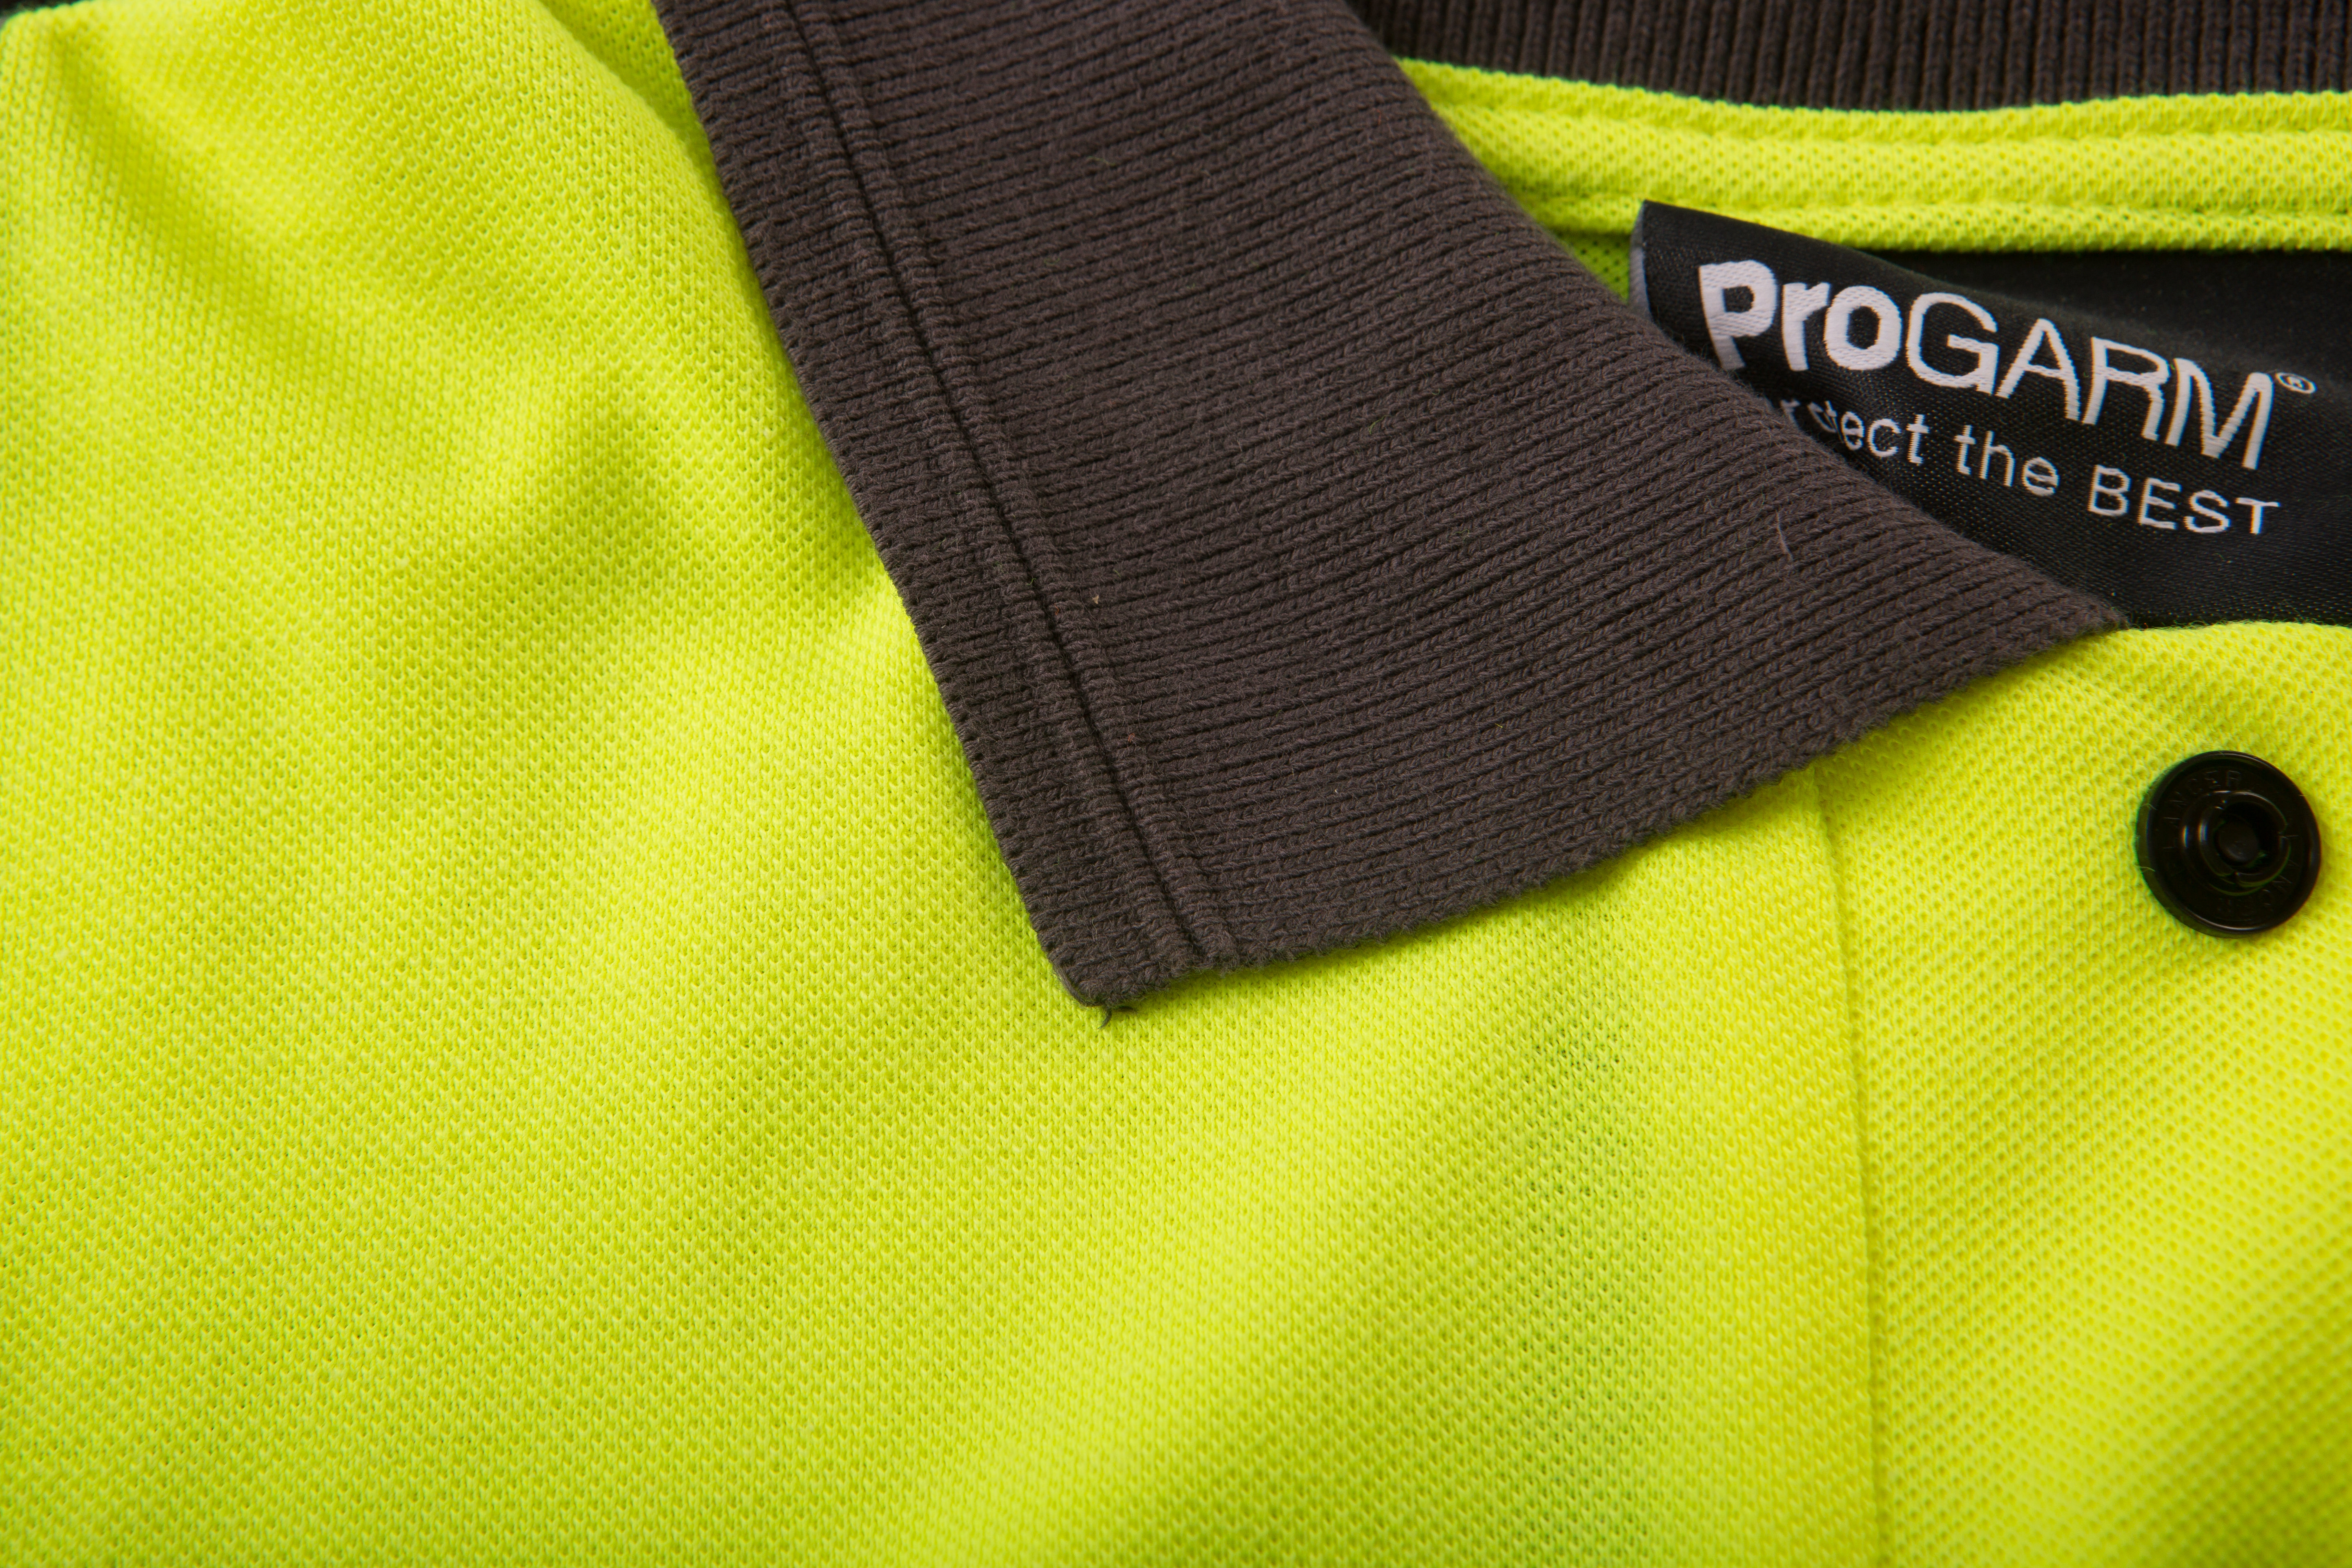 ProGARM 5286 ARC POLO SHIRT-1350